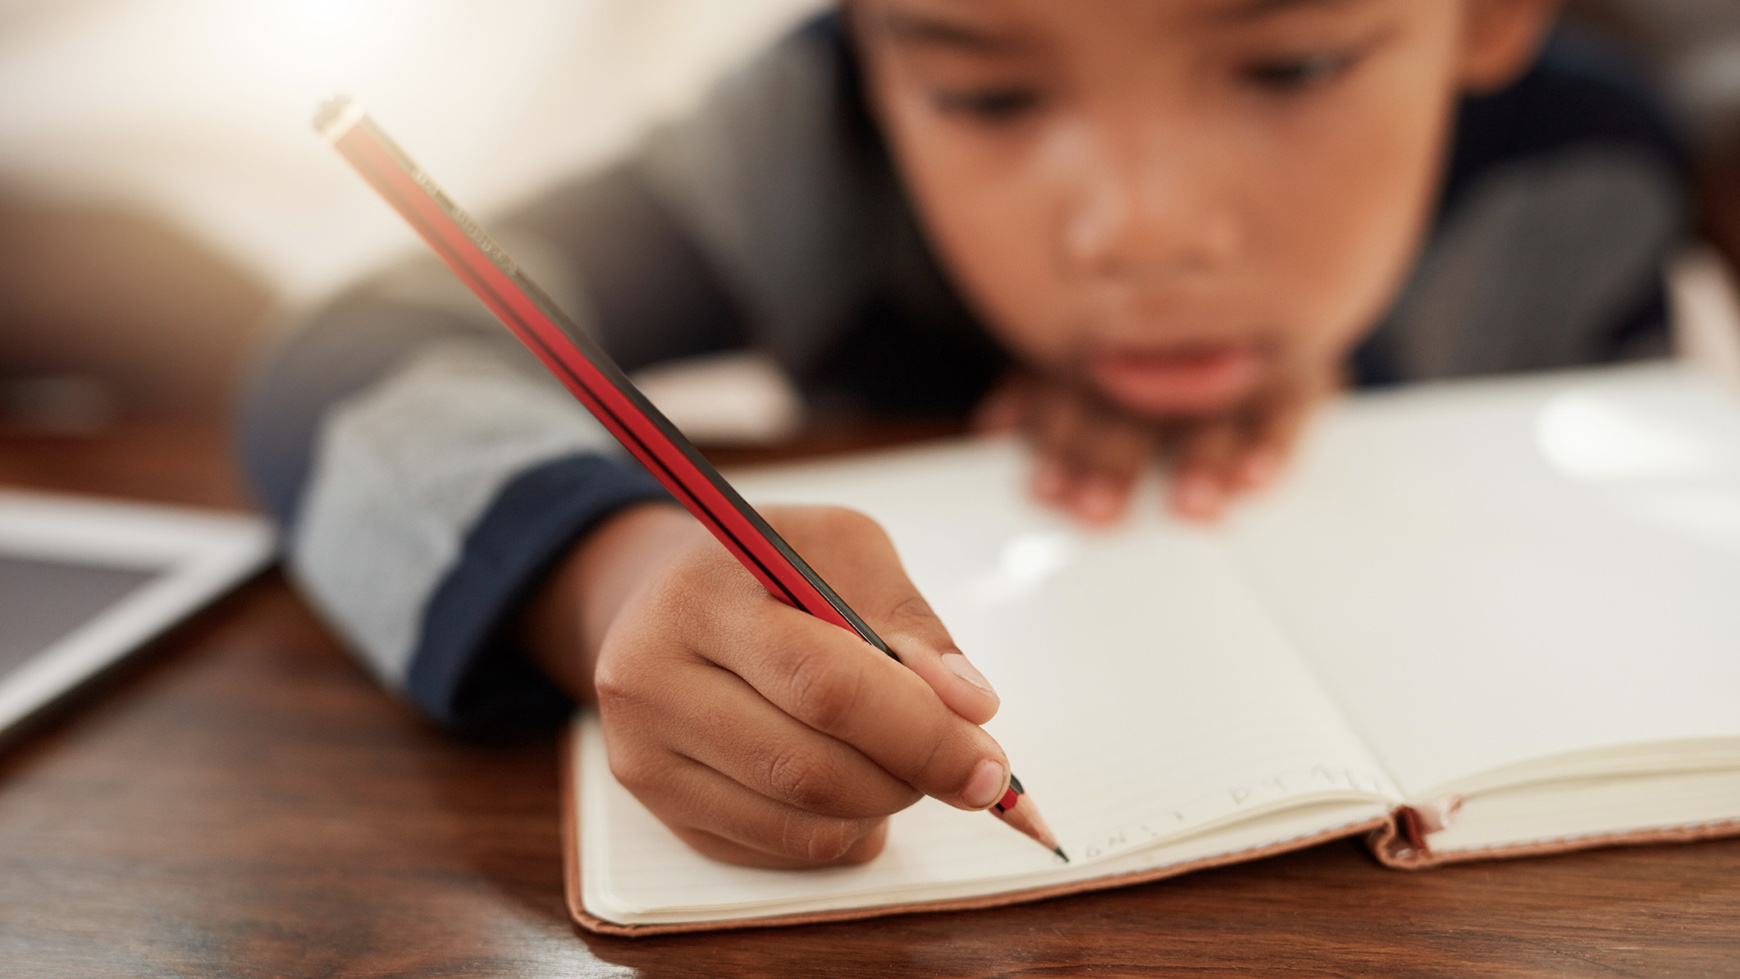 How to Improve Handwriting | Understood - For learning and thinking  differences